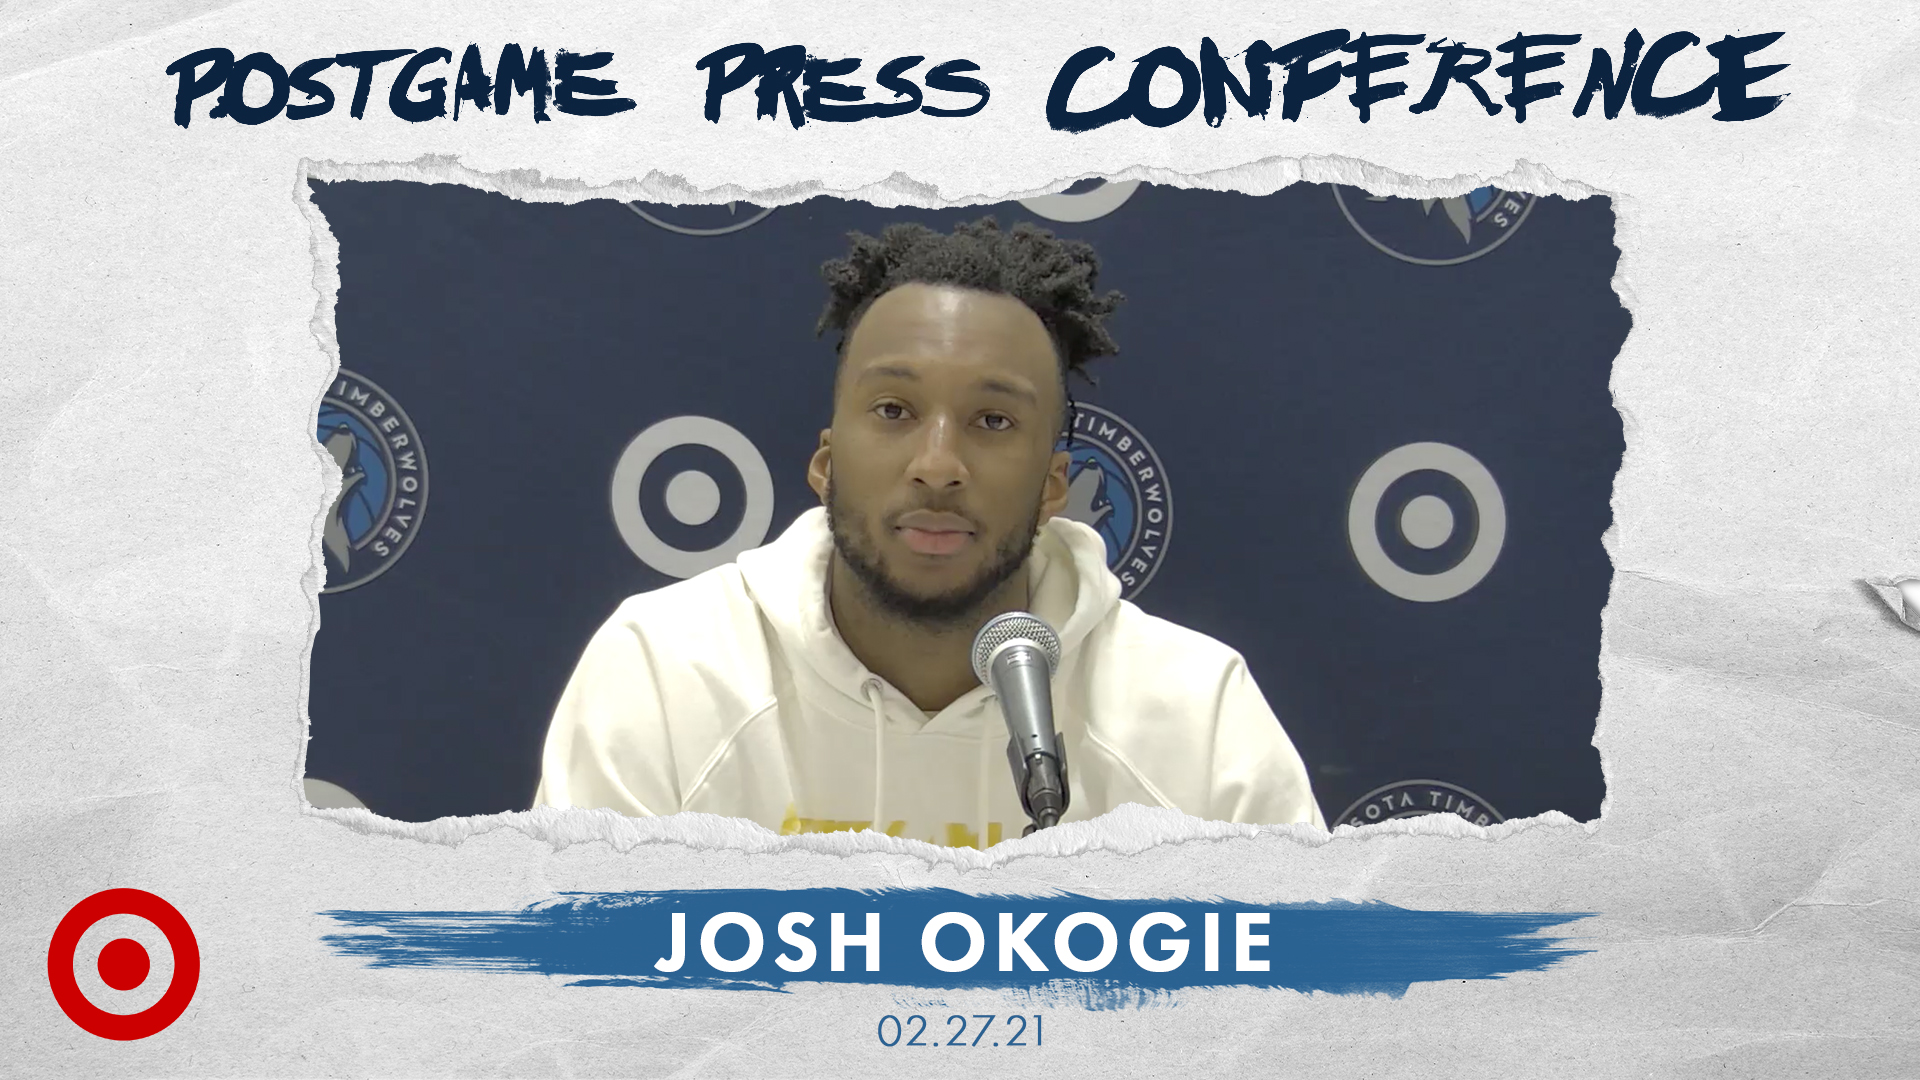 Josh Okogie Postgame Press Conference - February 27, 2021